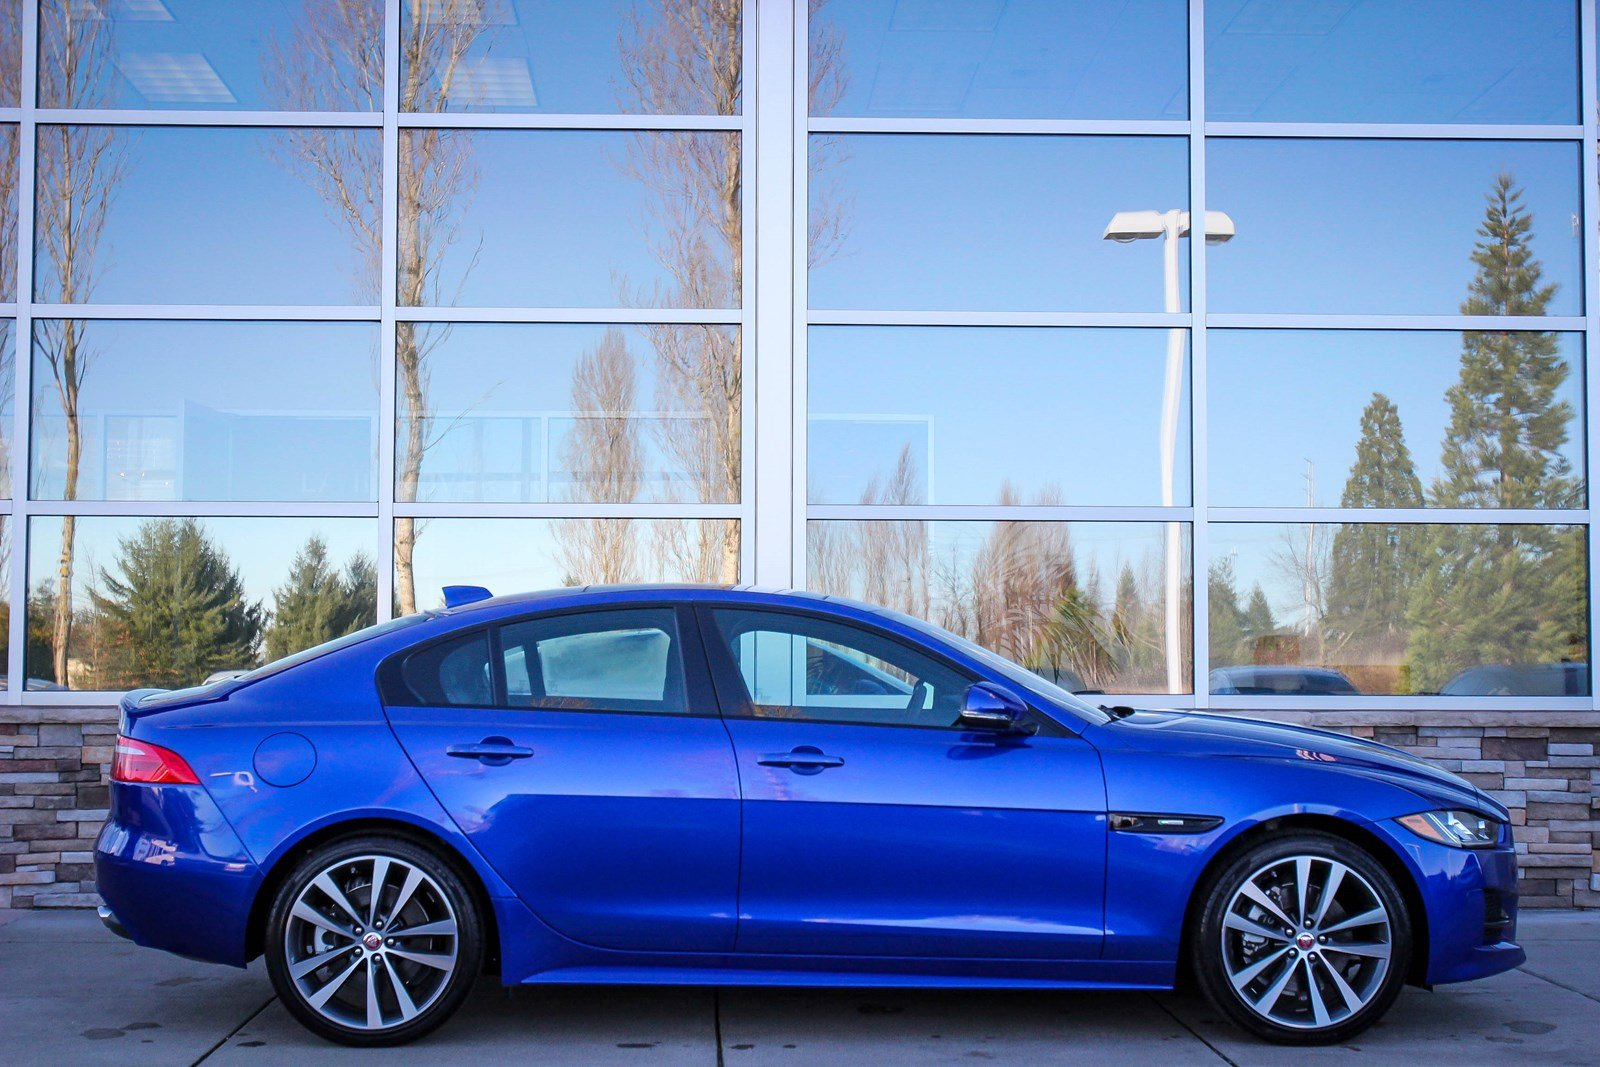 New 2018 Jaguar XE 25t R-Sport 4dr Car in Bellevue #59807 ...